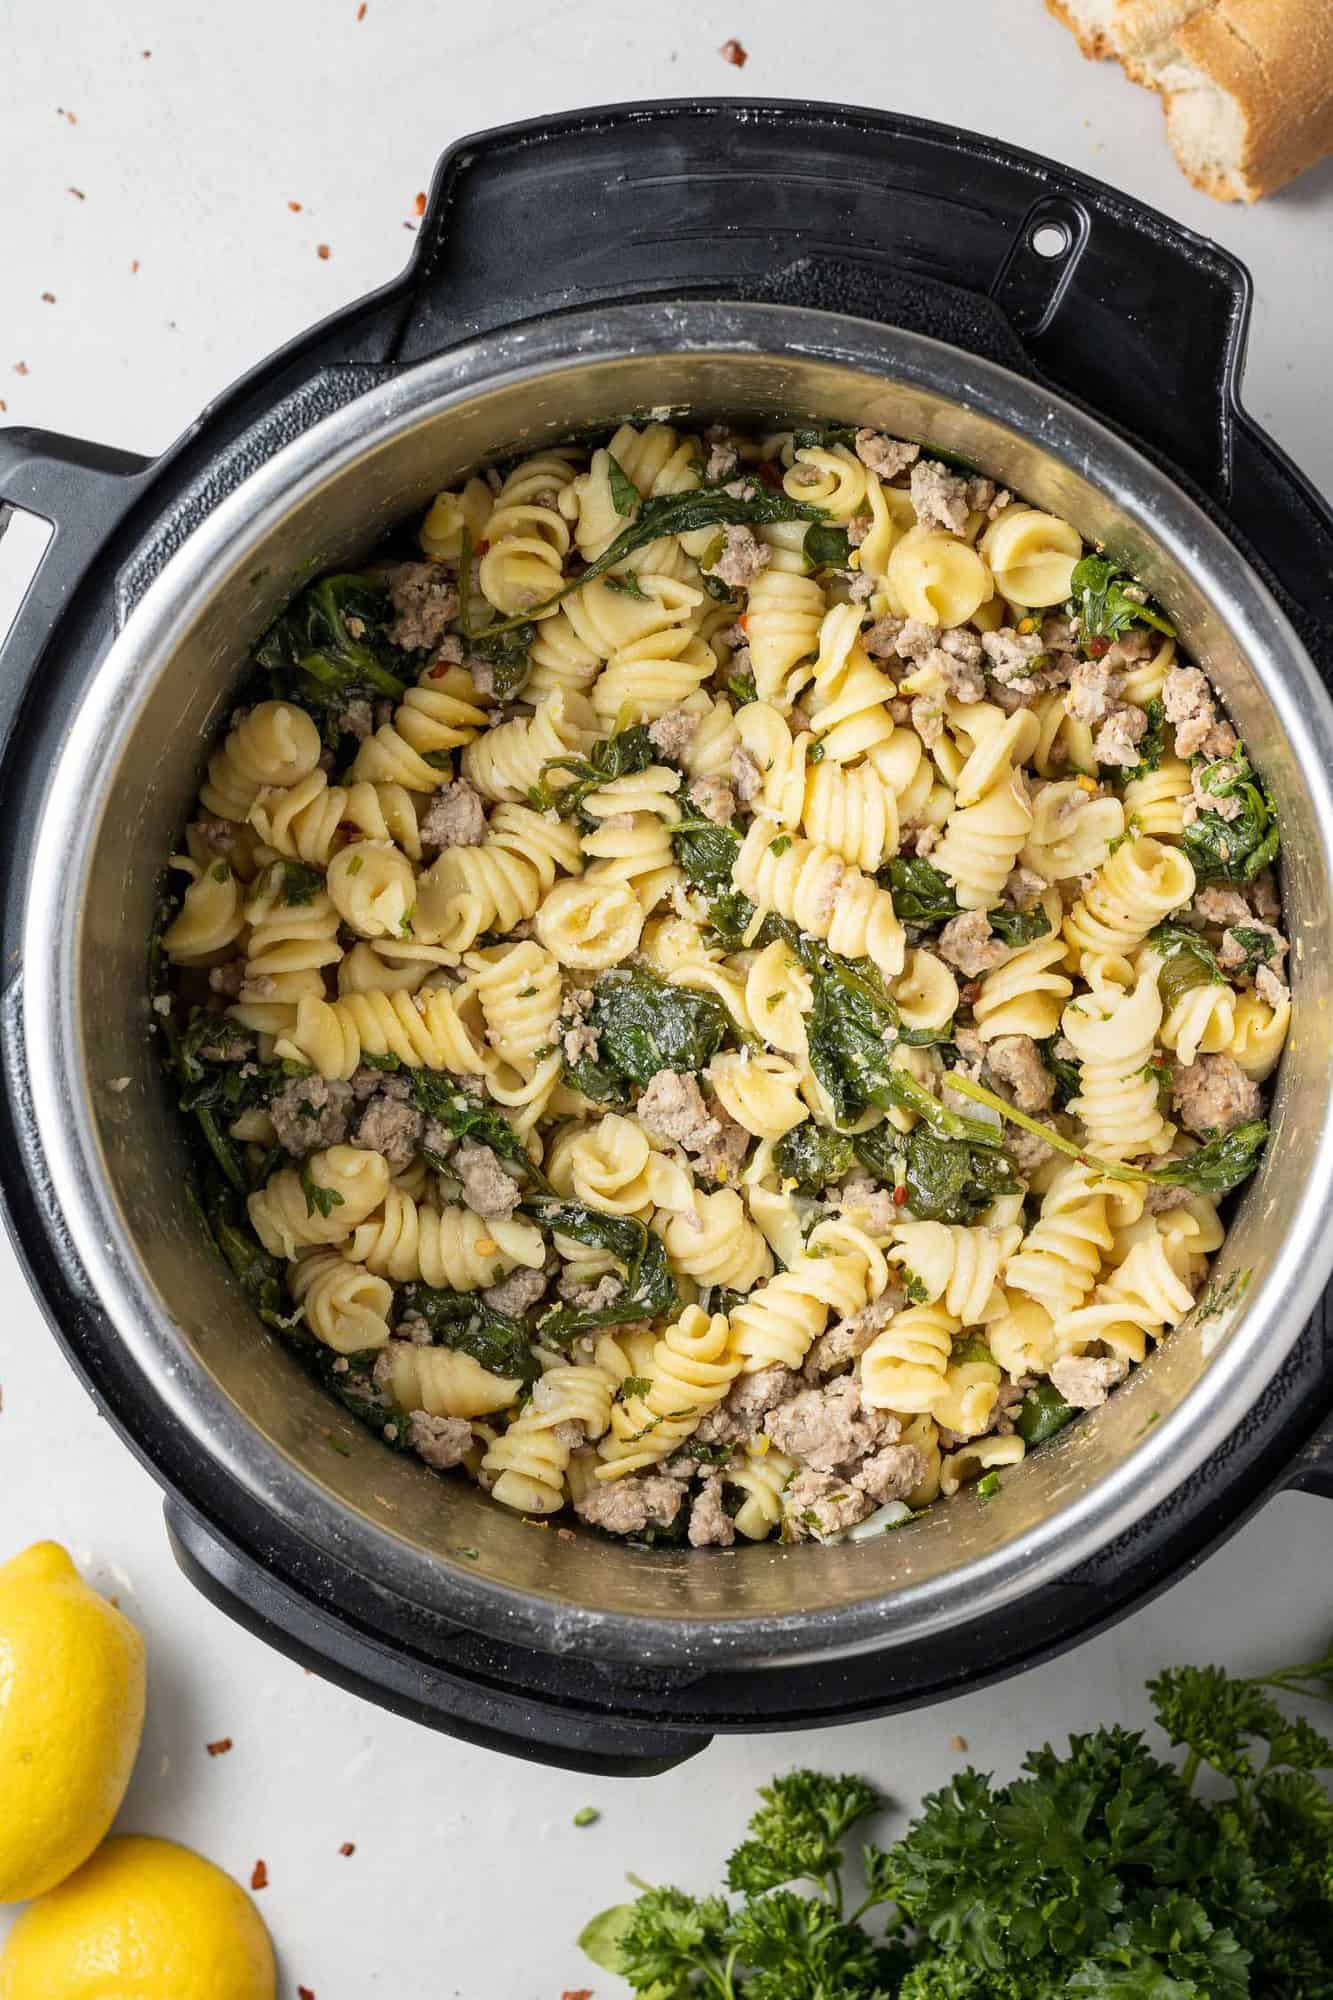 Overhead view of instant pot with pasta, spinach, and ground chicken.